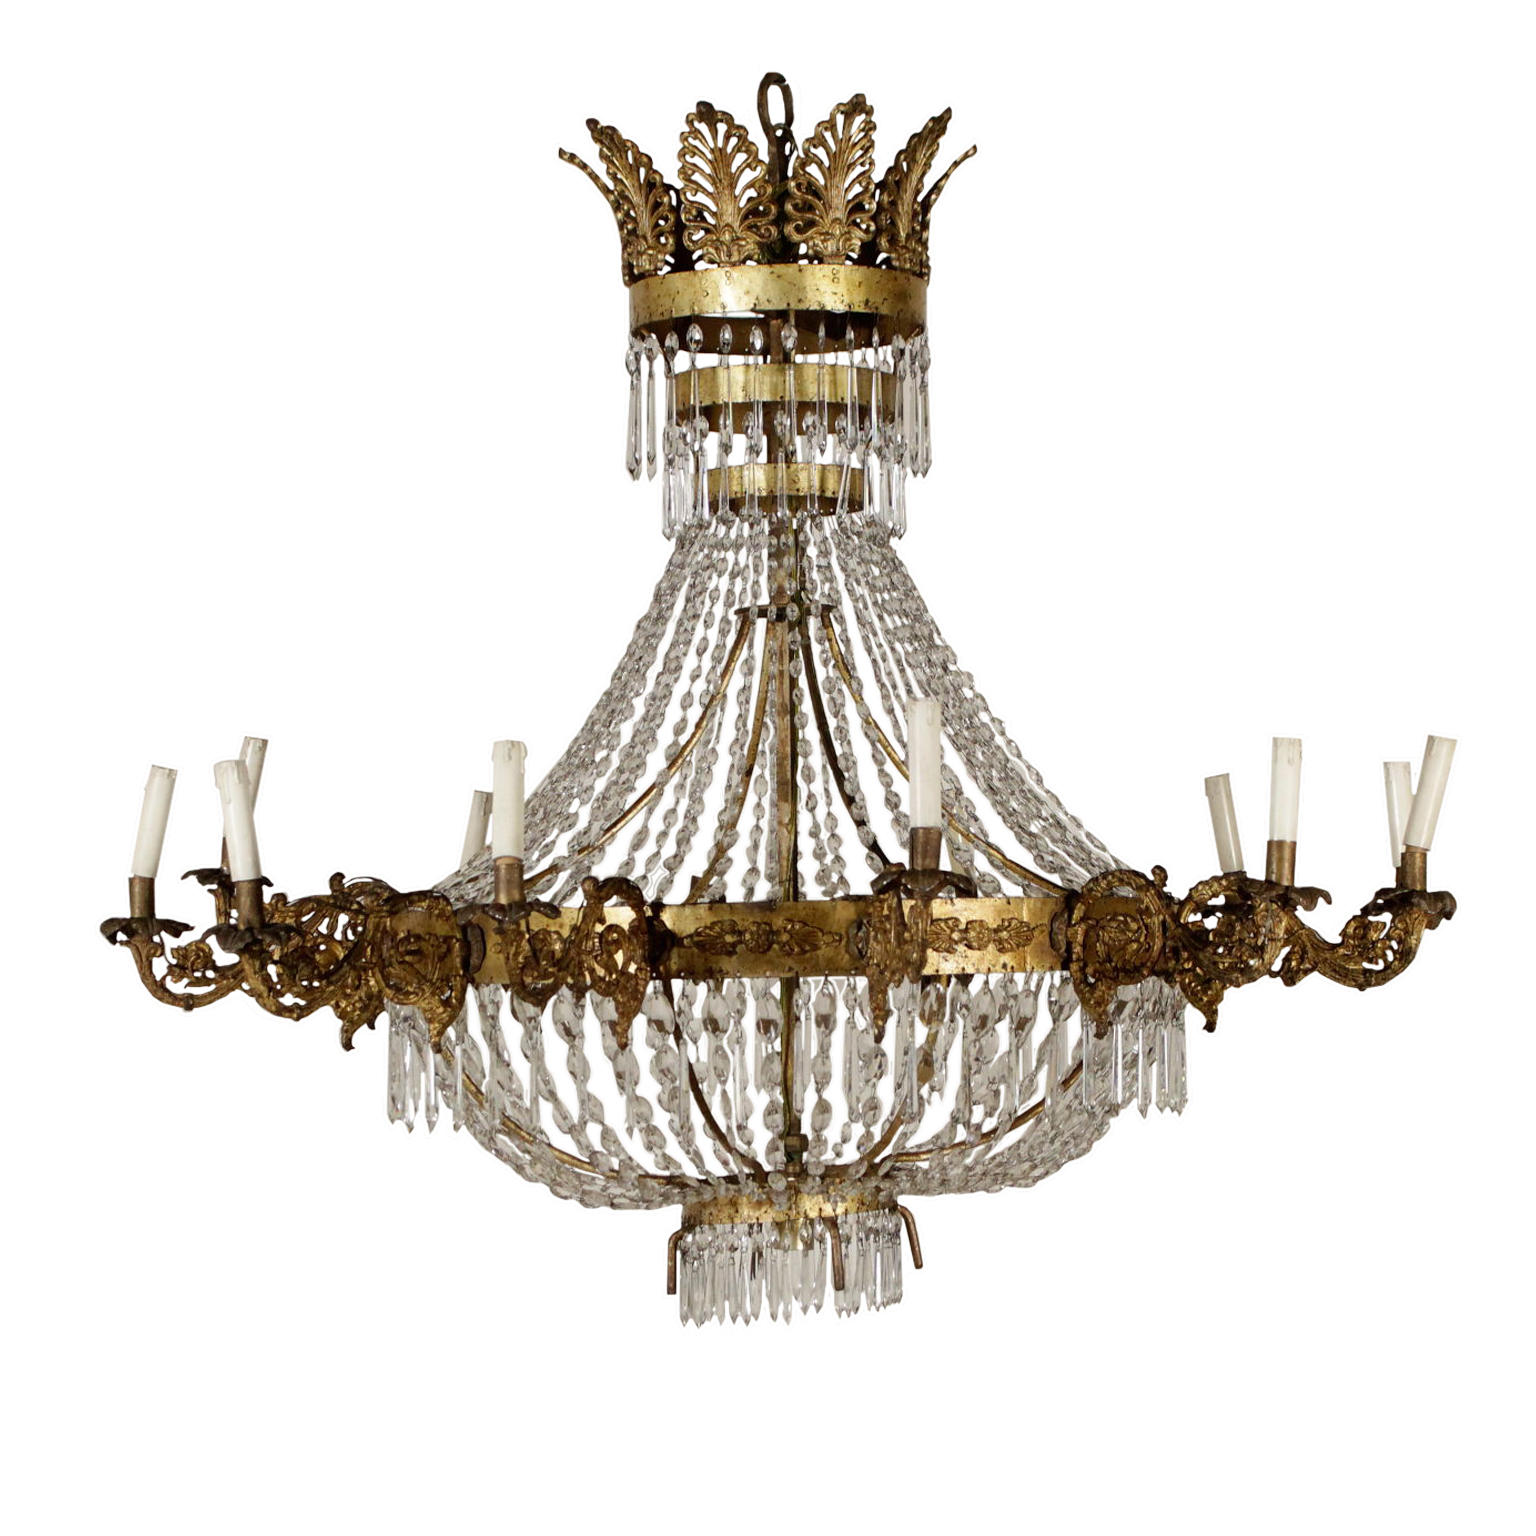 Chandelier hot air balloon chandeliers and lamps antiques chandelier hot air balloon mozeypictures Images